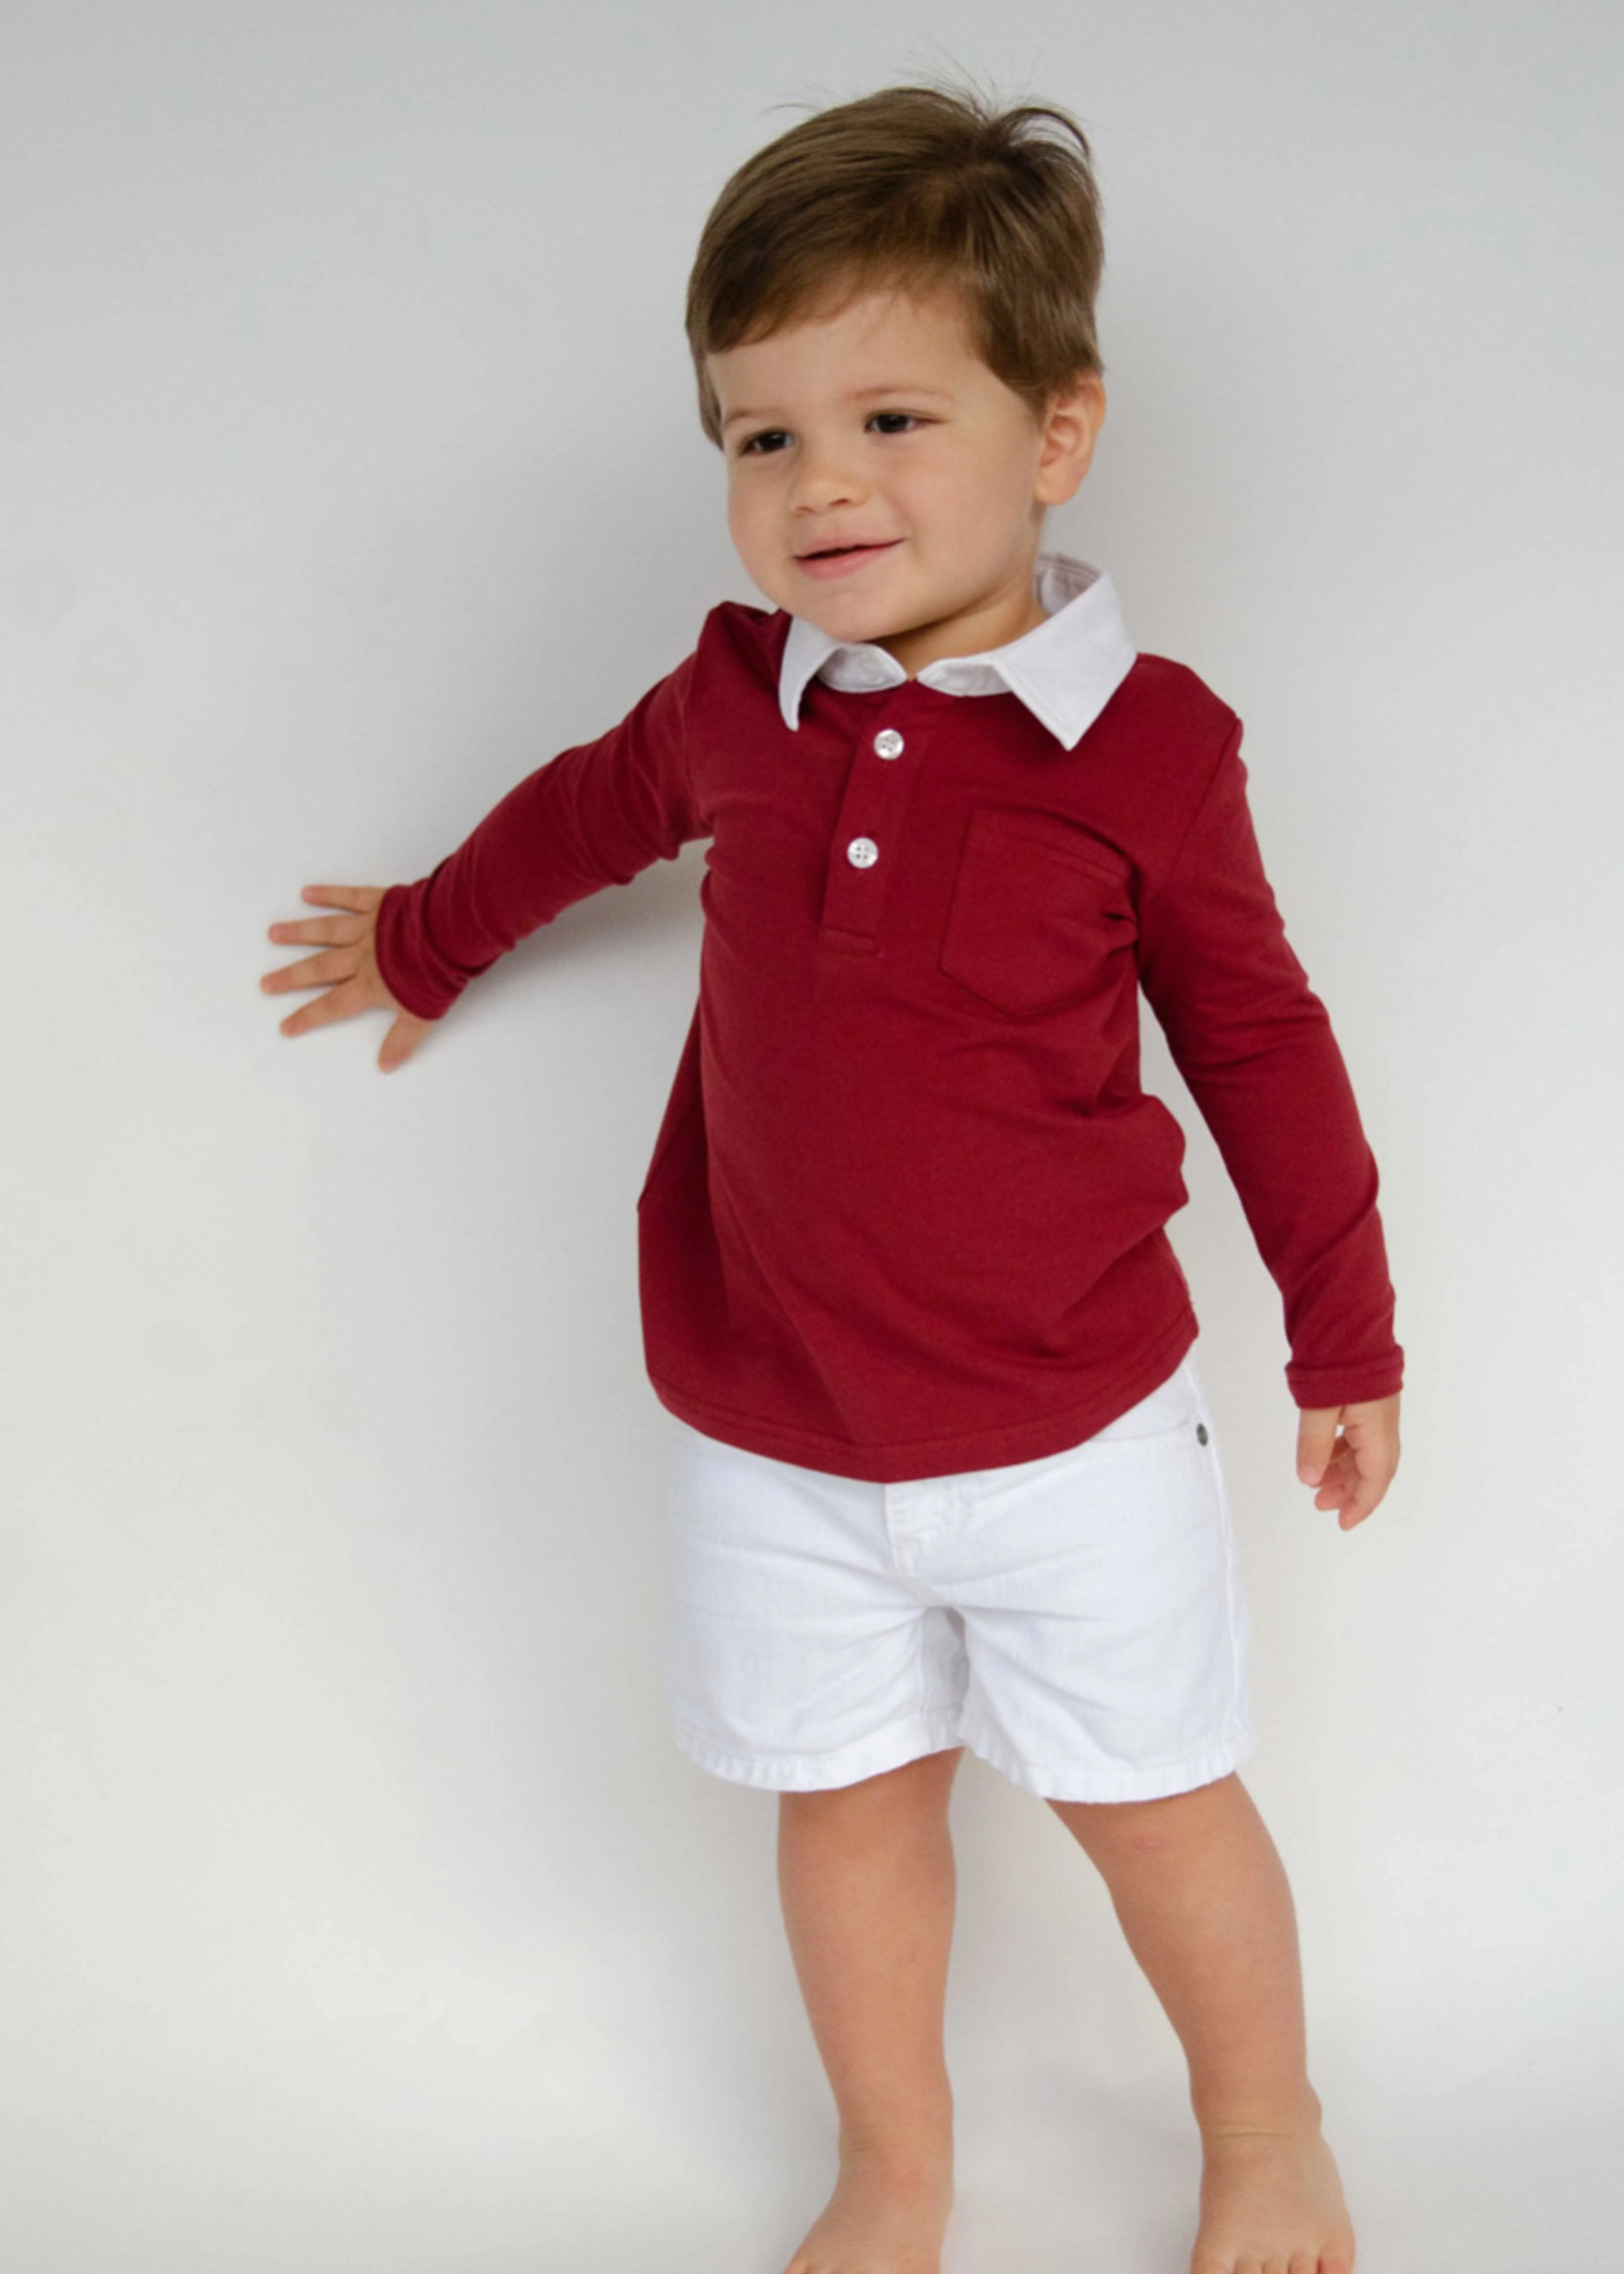 ollie jay The Collared Shirt